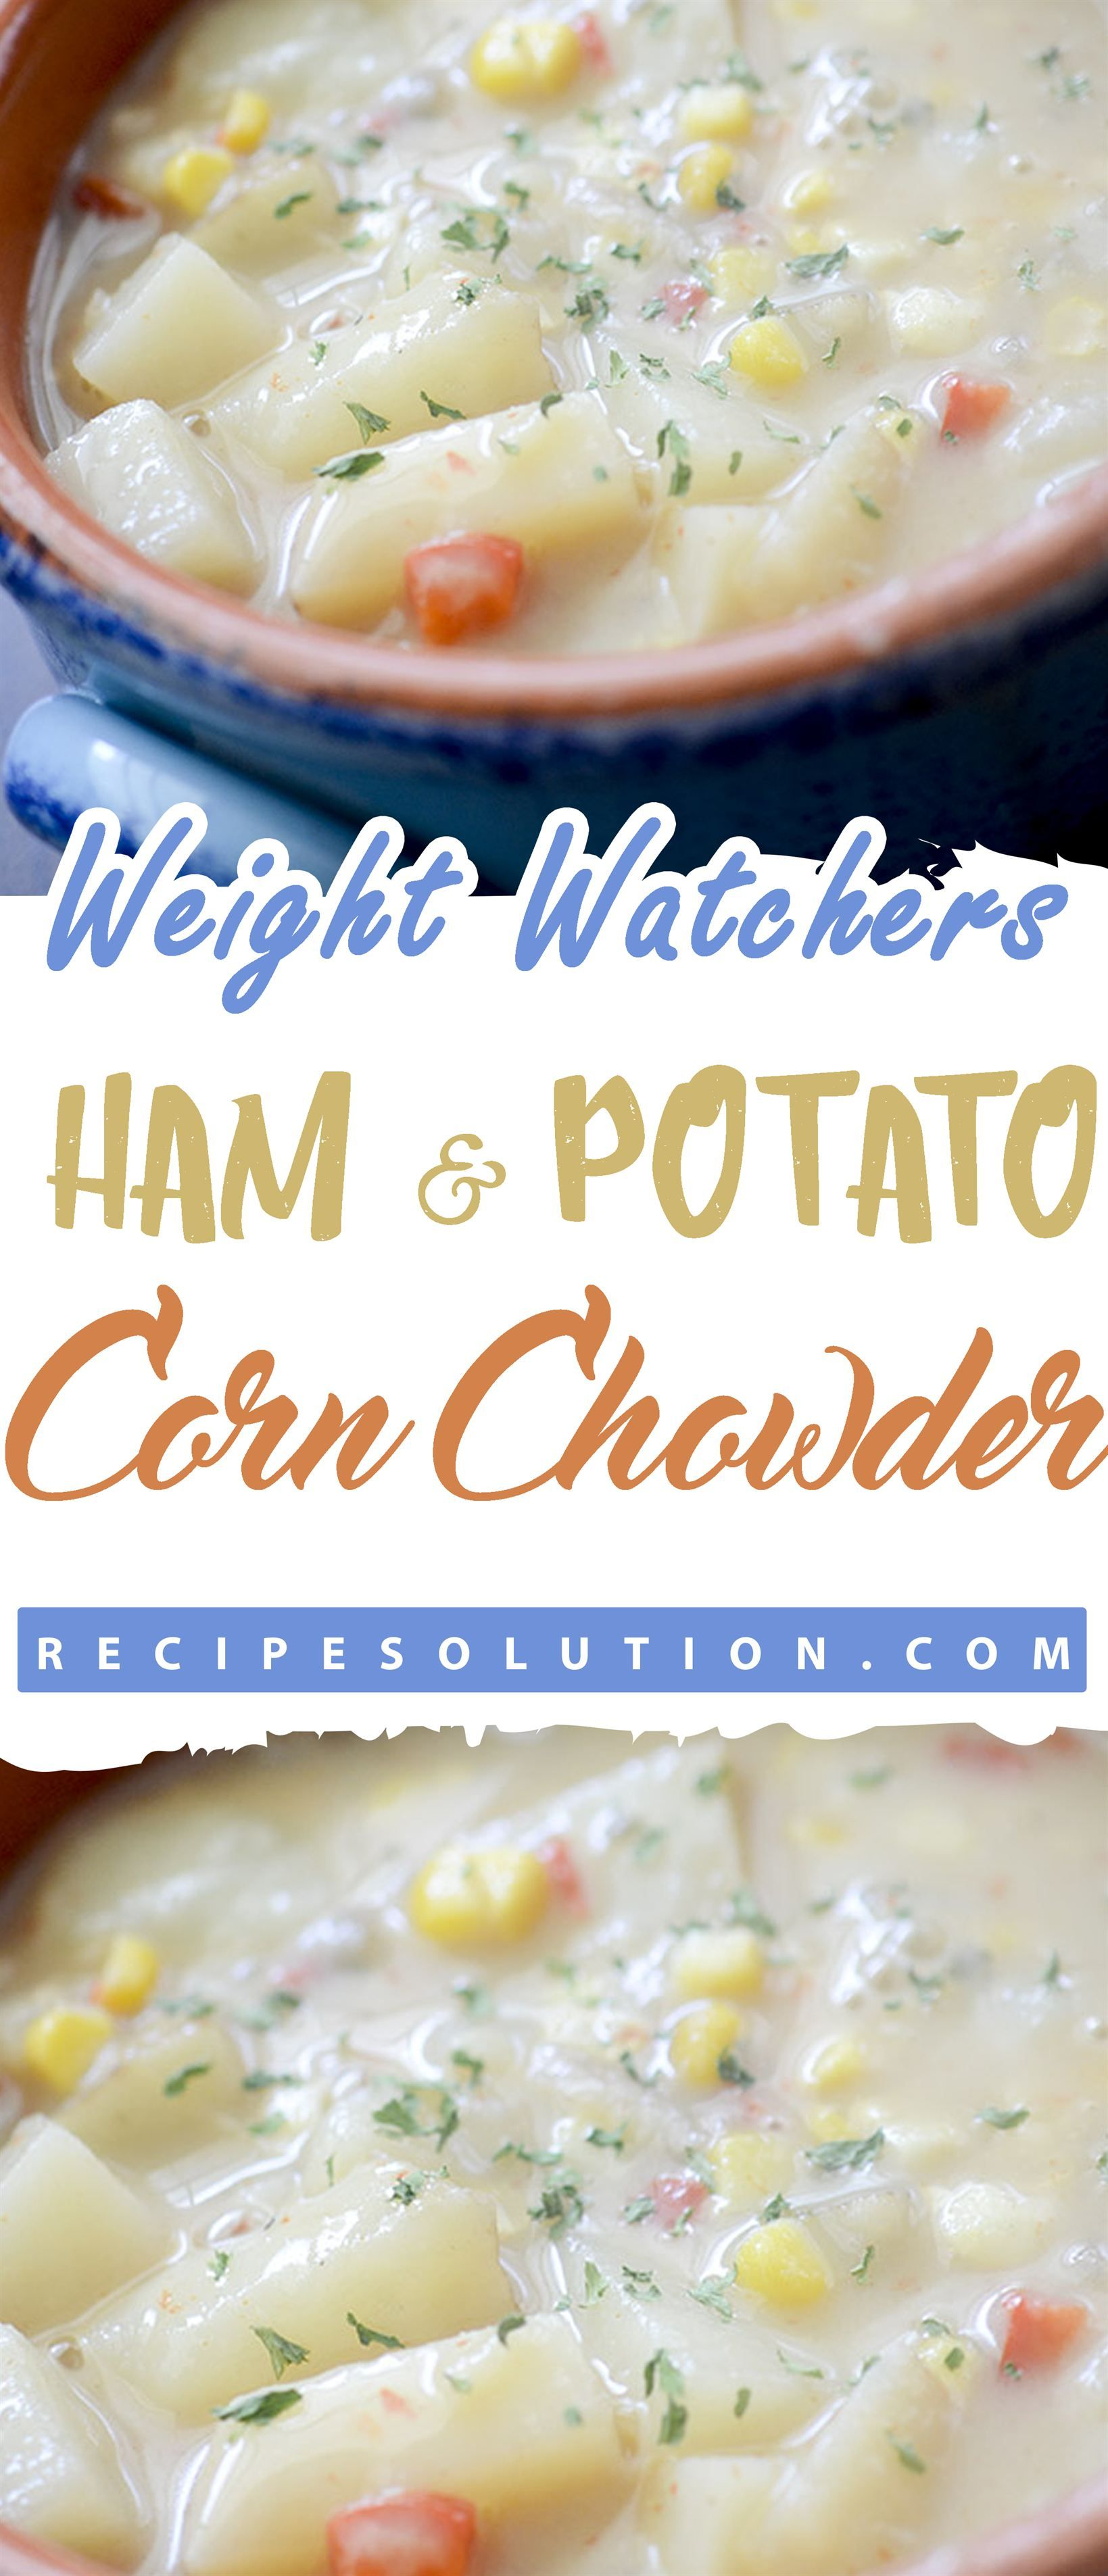 Weight Watchers Ham & Potato Corn Chowder!!! -- LOSS MEALS | Best healthy recipes including healthy breakfasts lunches dinners and snacks.